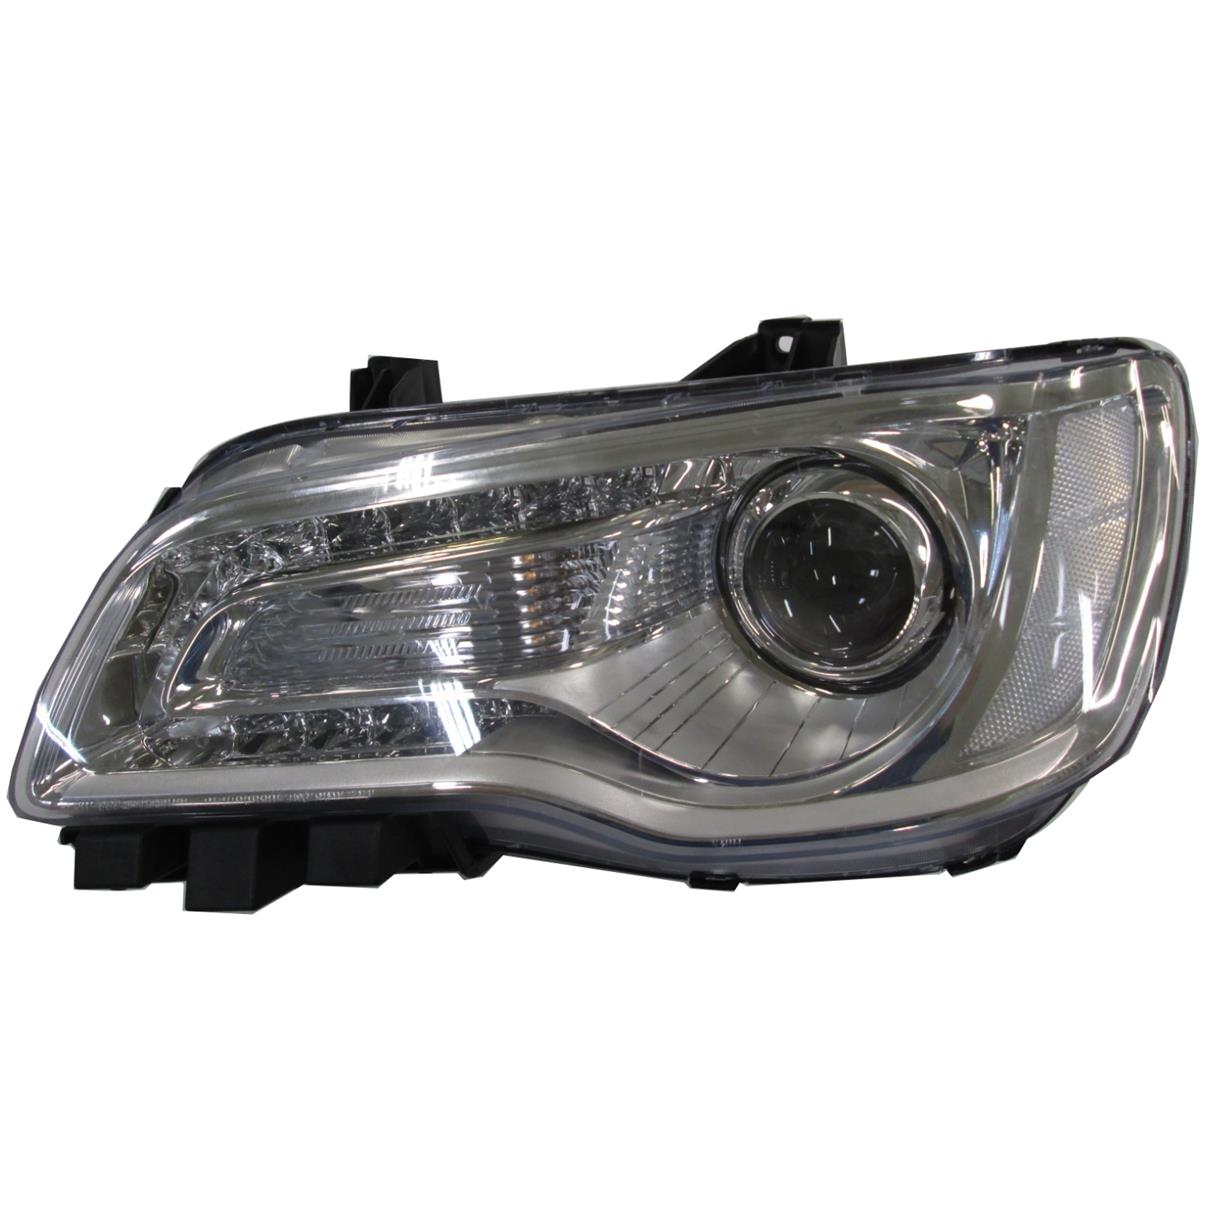 Head Light Assemblies